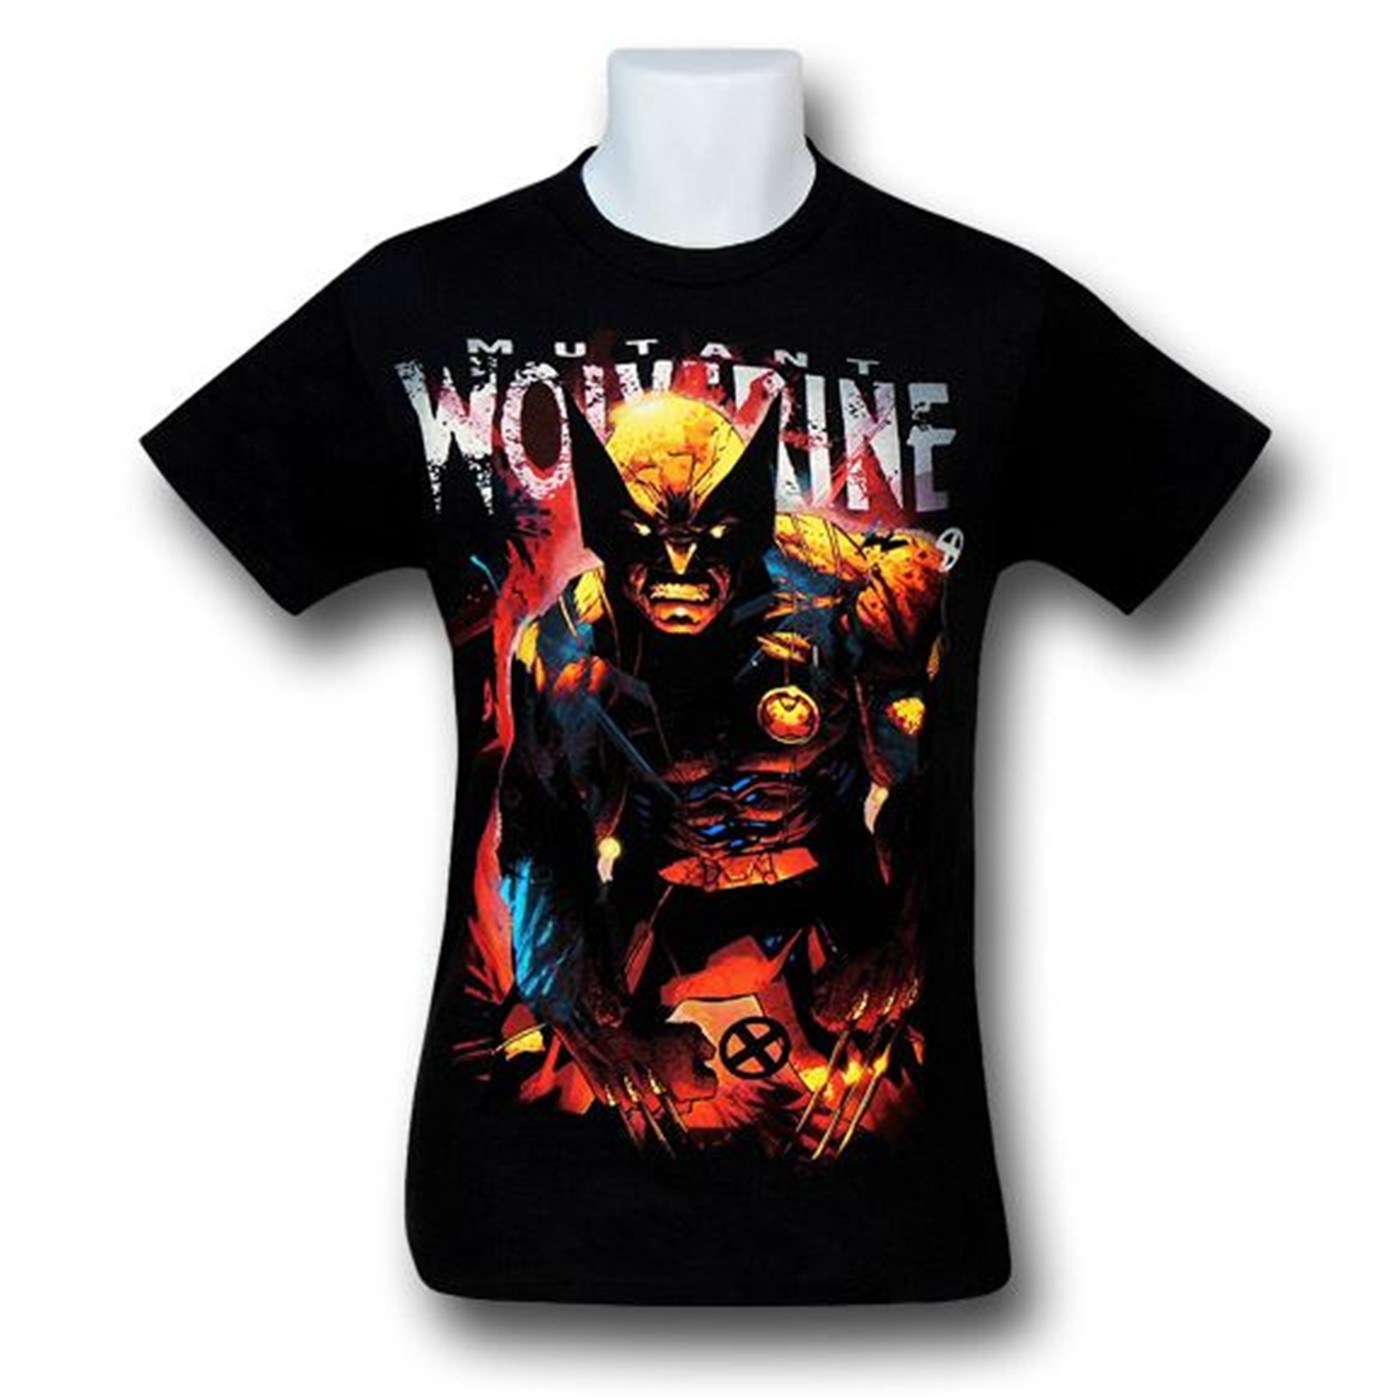 Wolverine Angry Mutation on Black T-Shirt